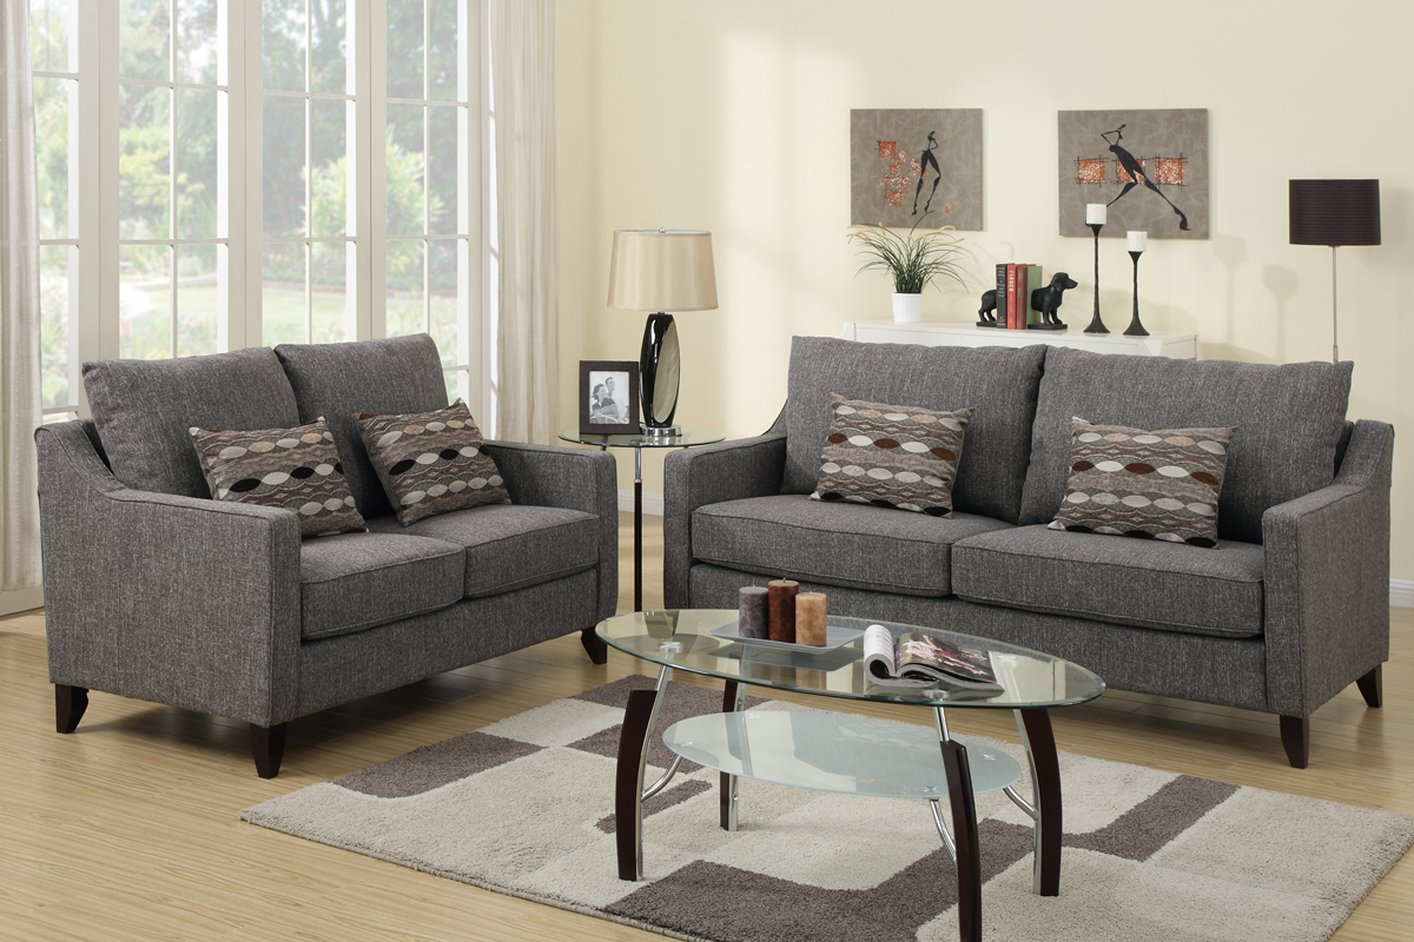 Sofa Set Grau Poundex Avery F7544 Grey Fabric Sofa And Loveseat Set